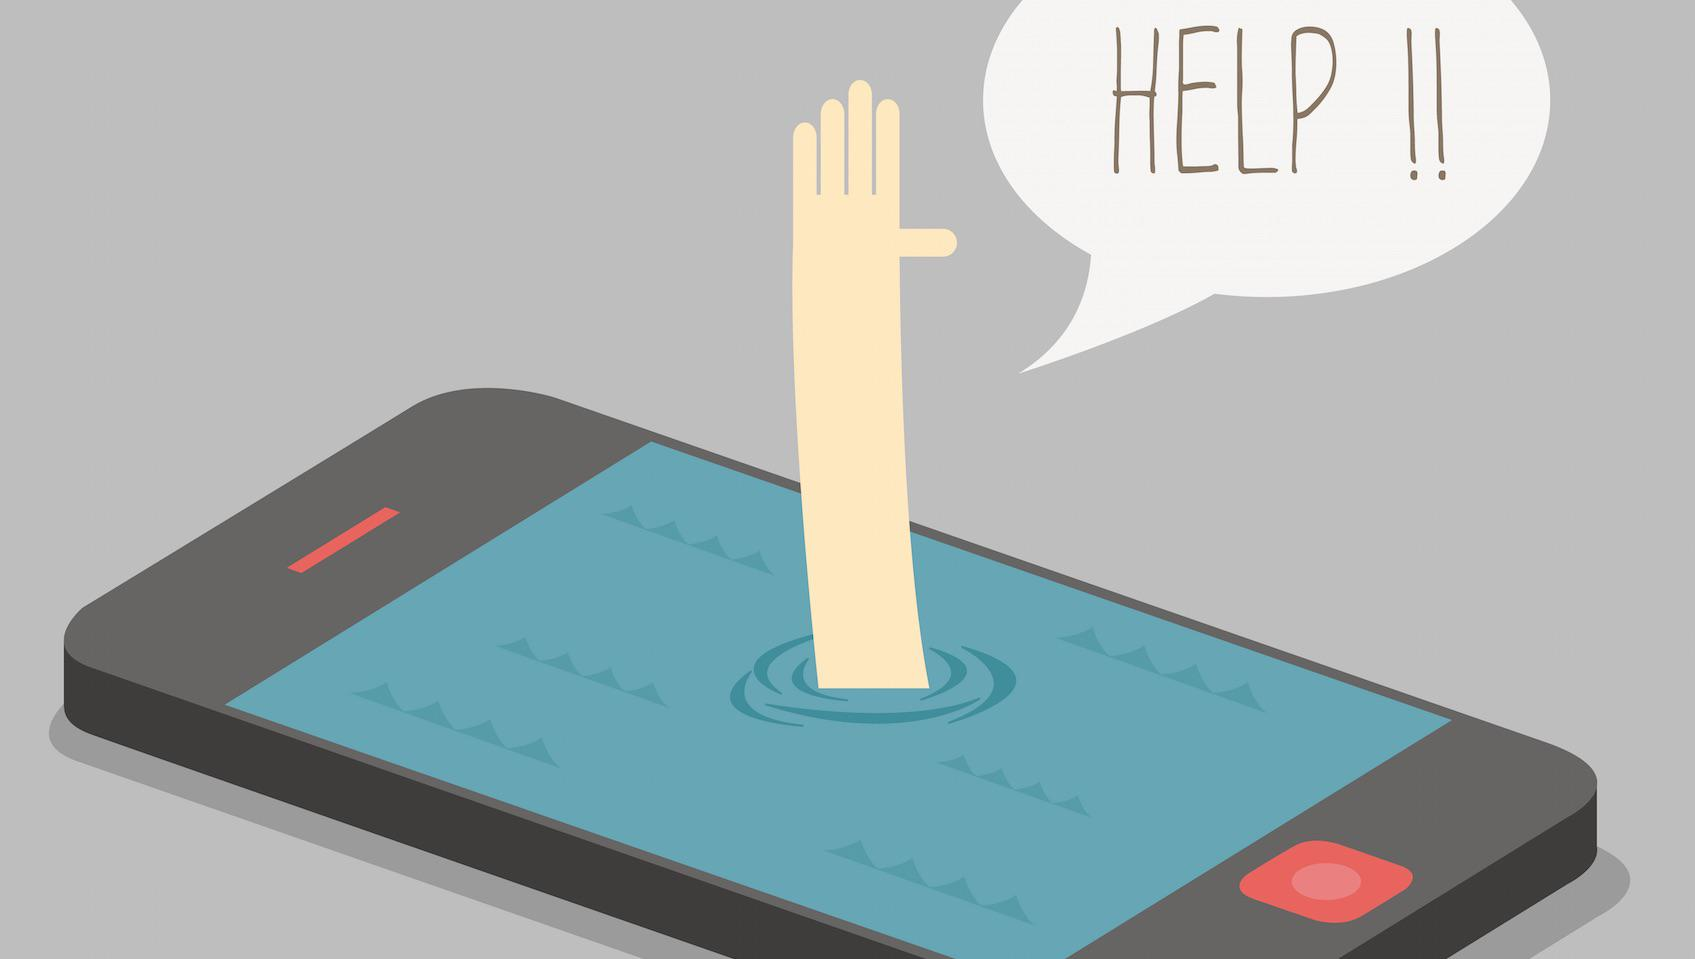 RT @TheNextWeb: How I stopped staring at my smartphone all the time  http://t.co/t5duN78Ju2 http://t.co/Rto9eiiYDM